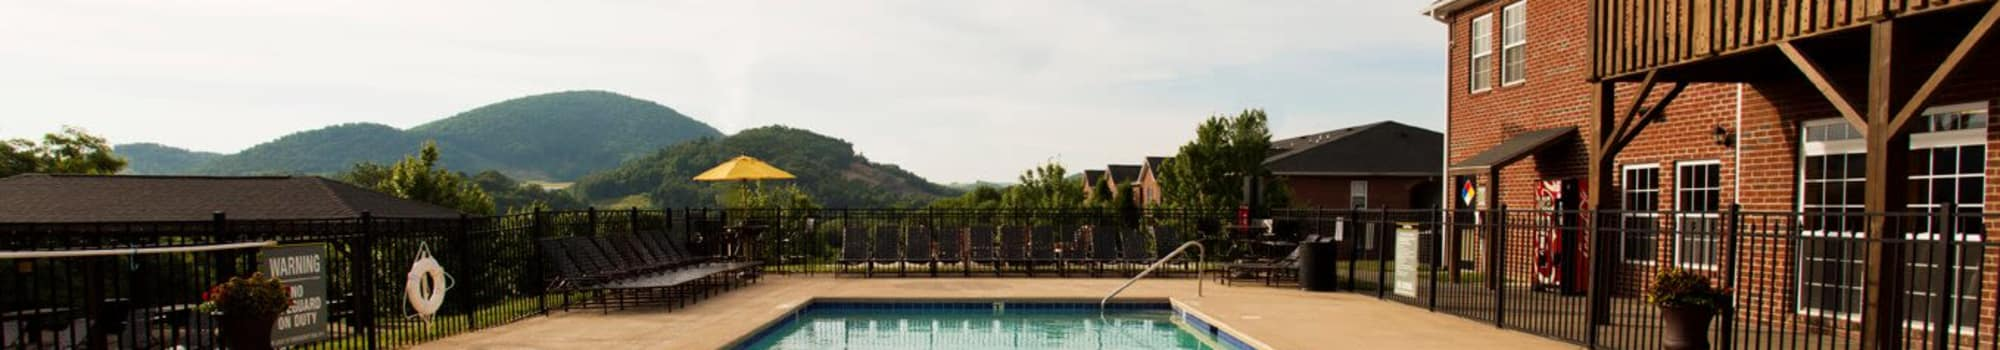 Amenities at Mountaineer Village in Boone, North Carolina